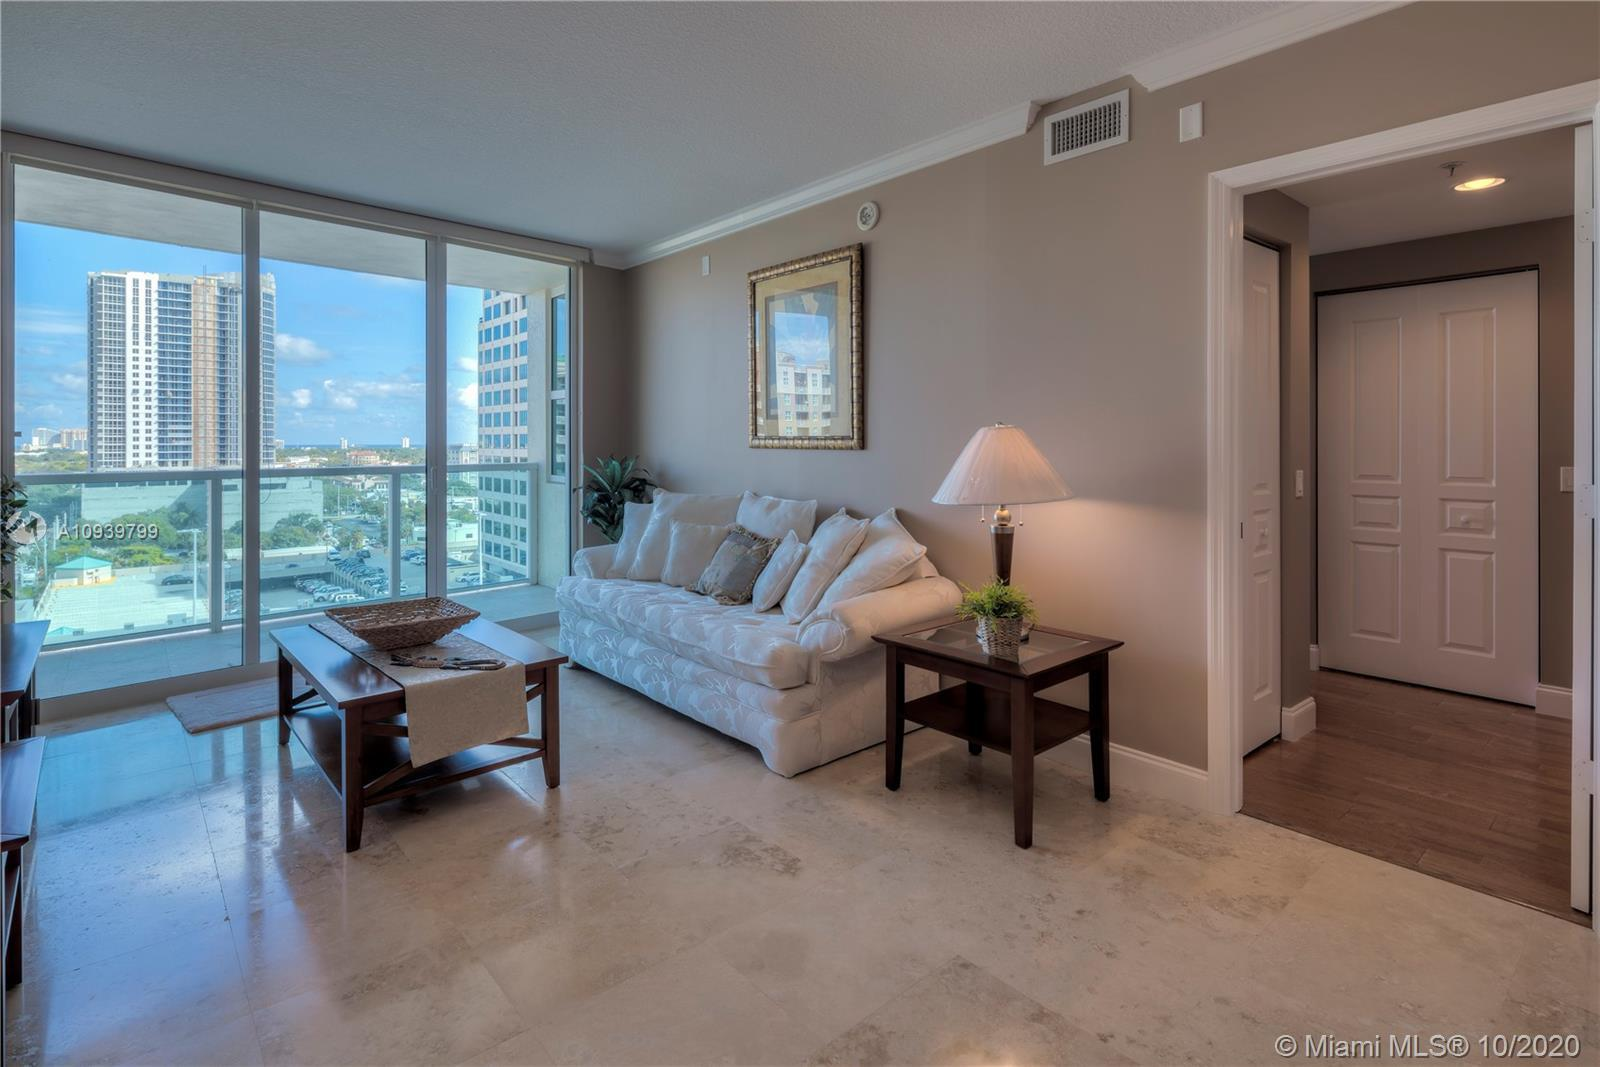 Perfectly located in the center of it all! Split Floor plan with beautiful view from every room.  T